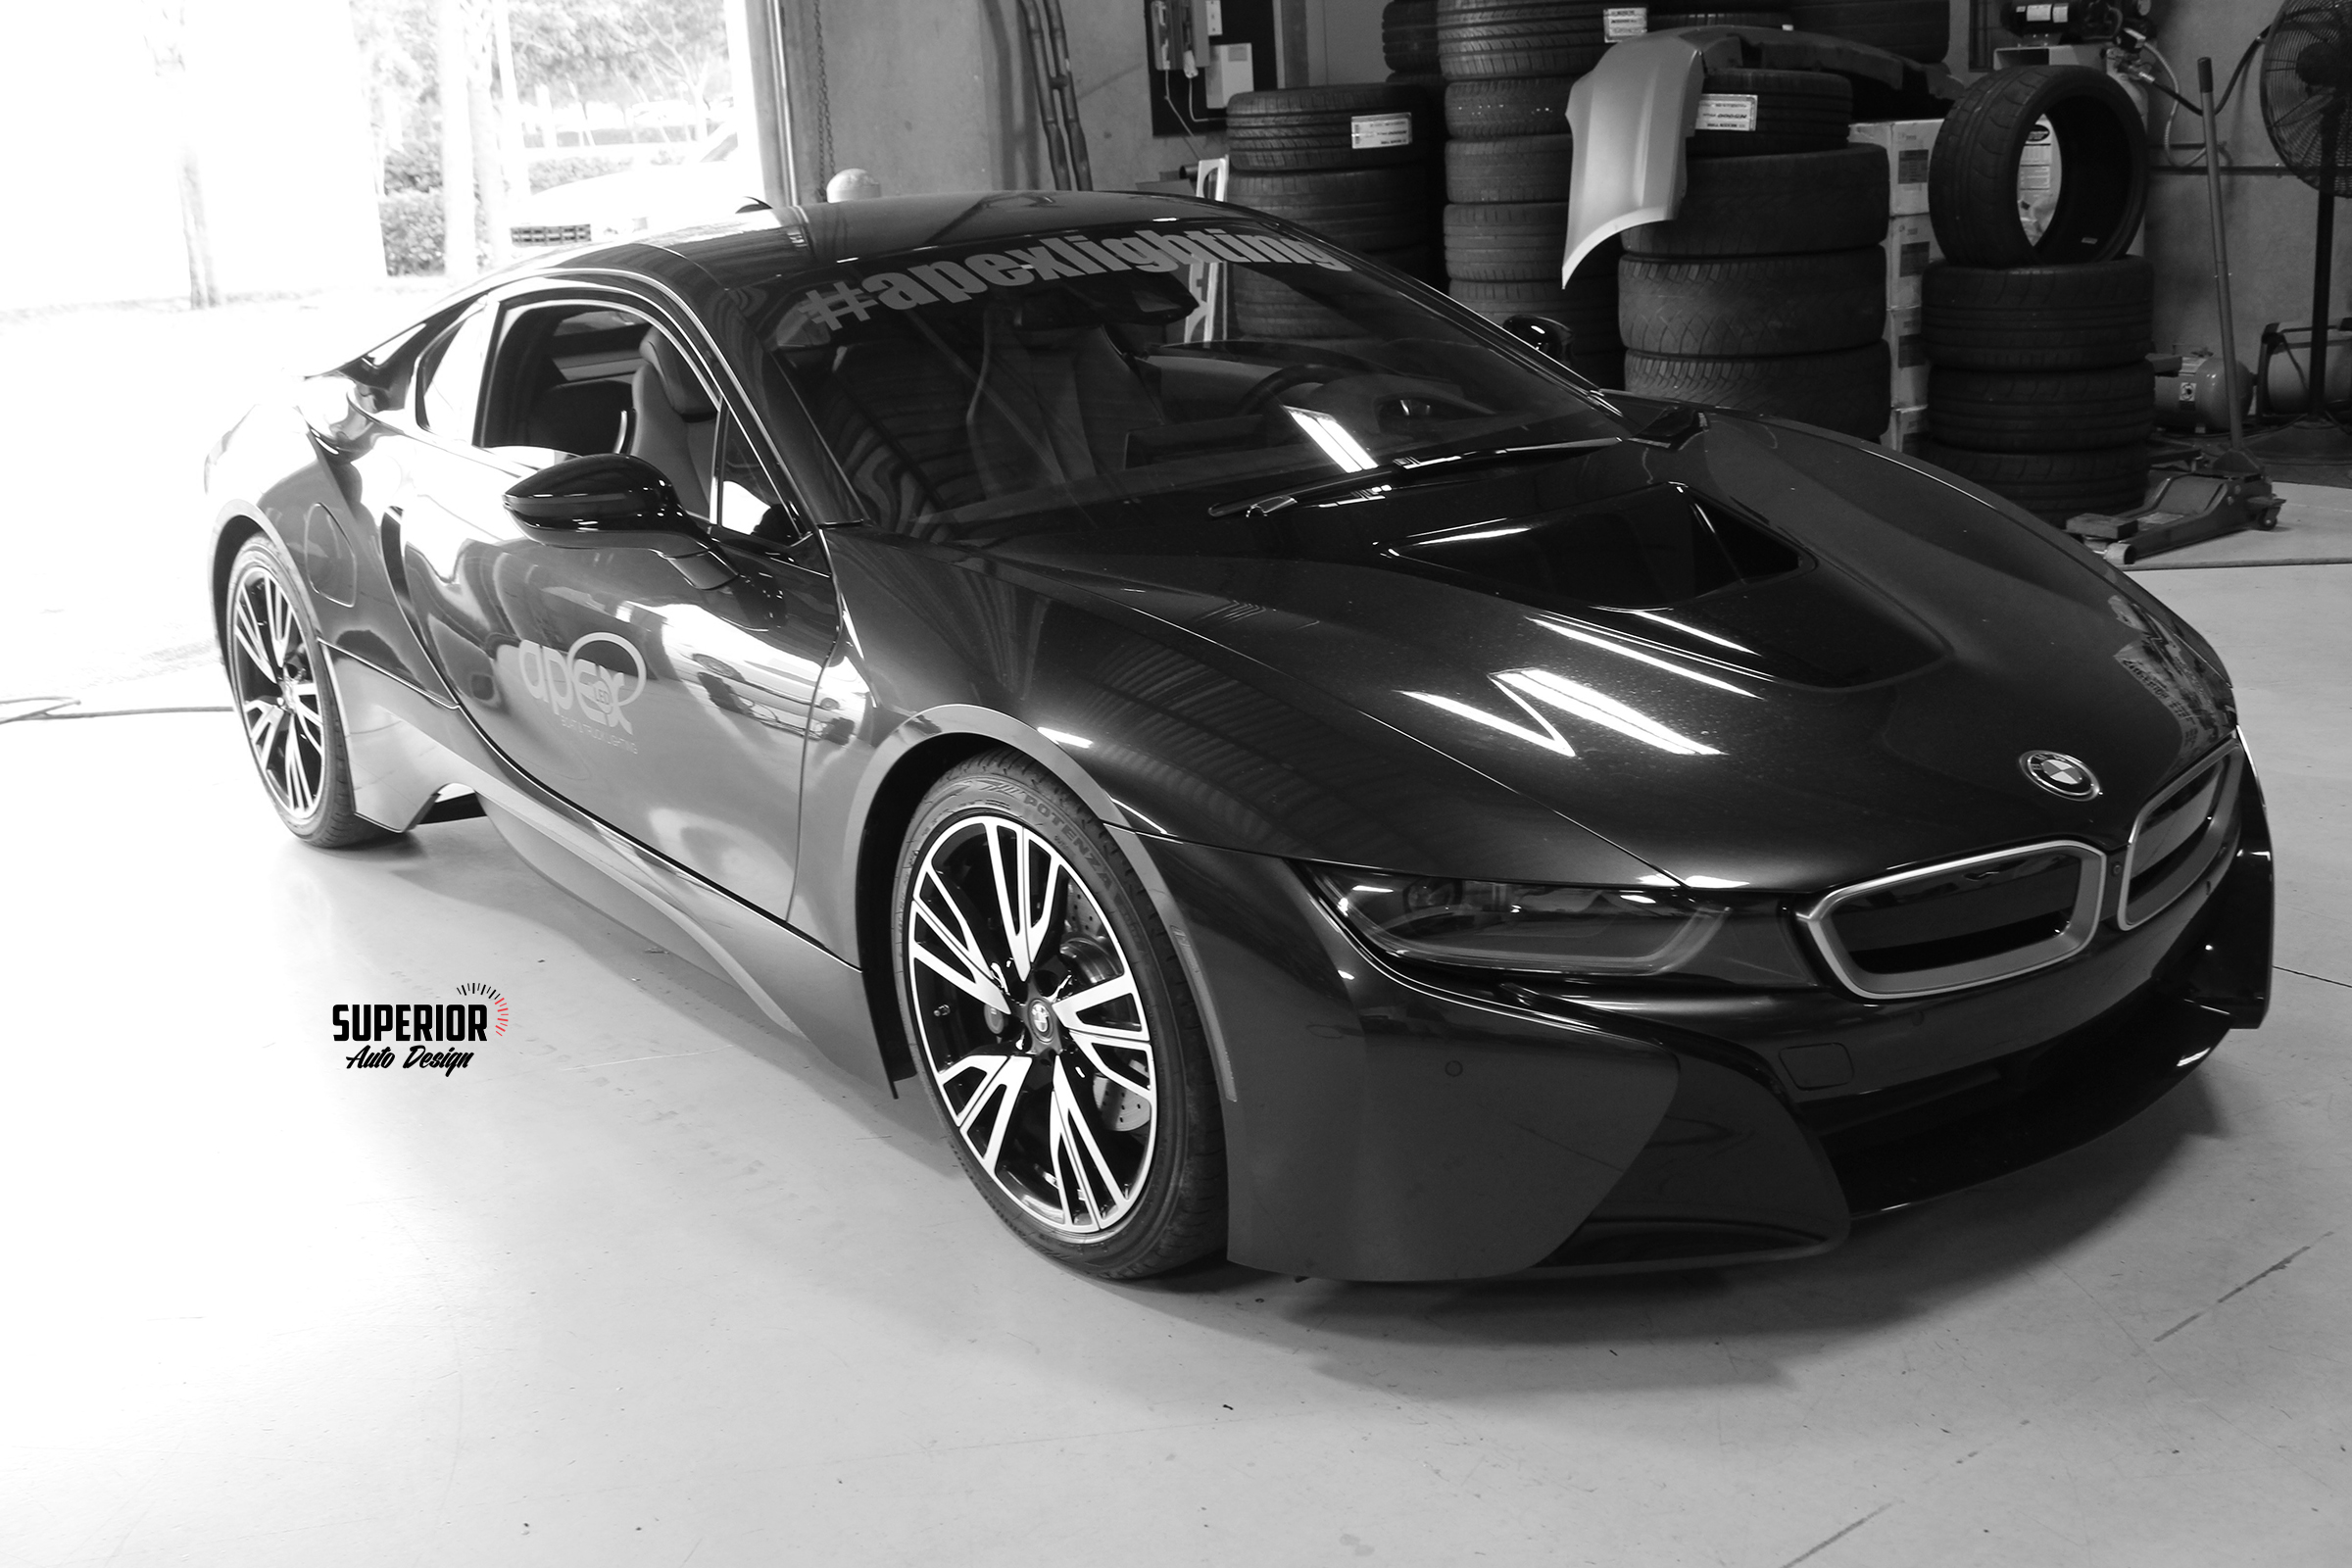 bmw-i8-superior-auto-design-4